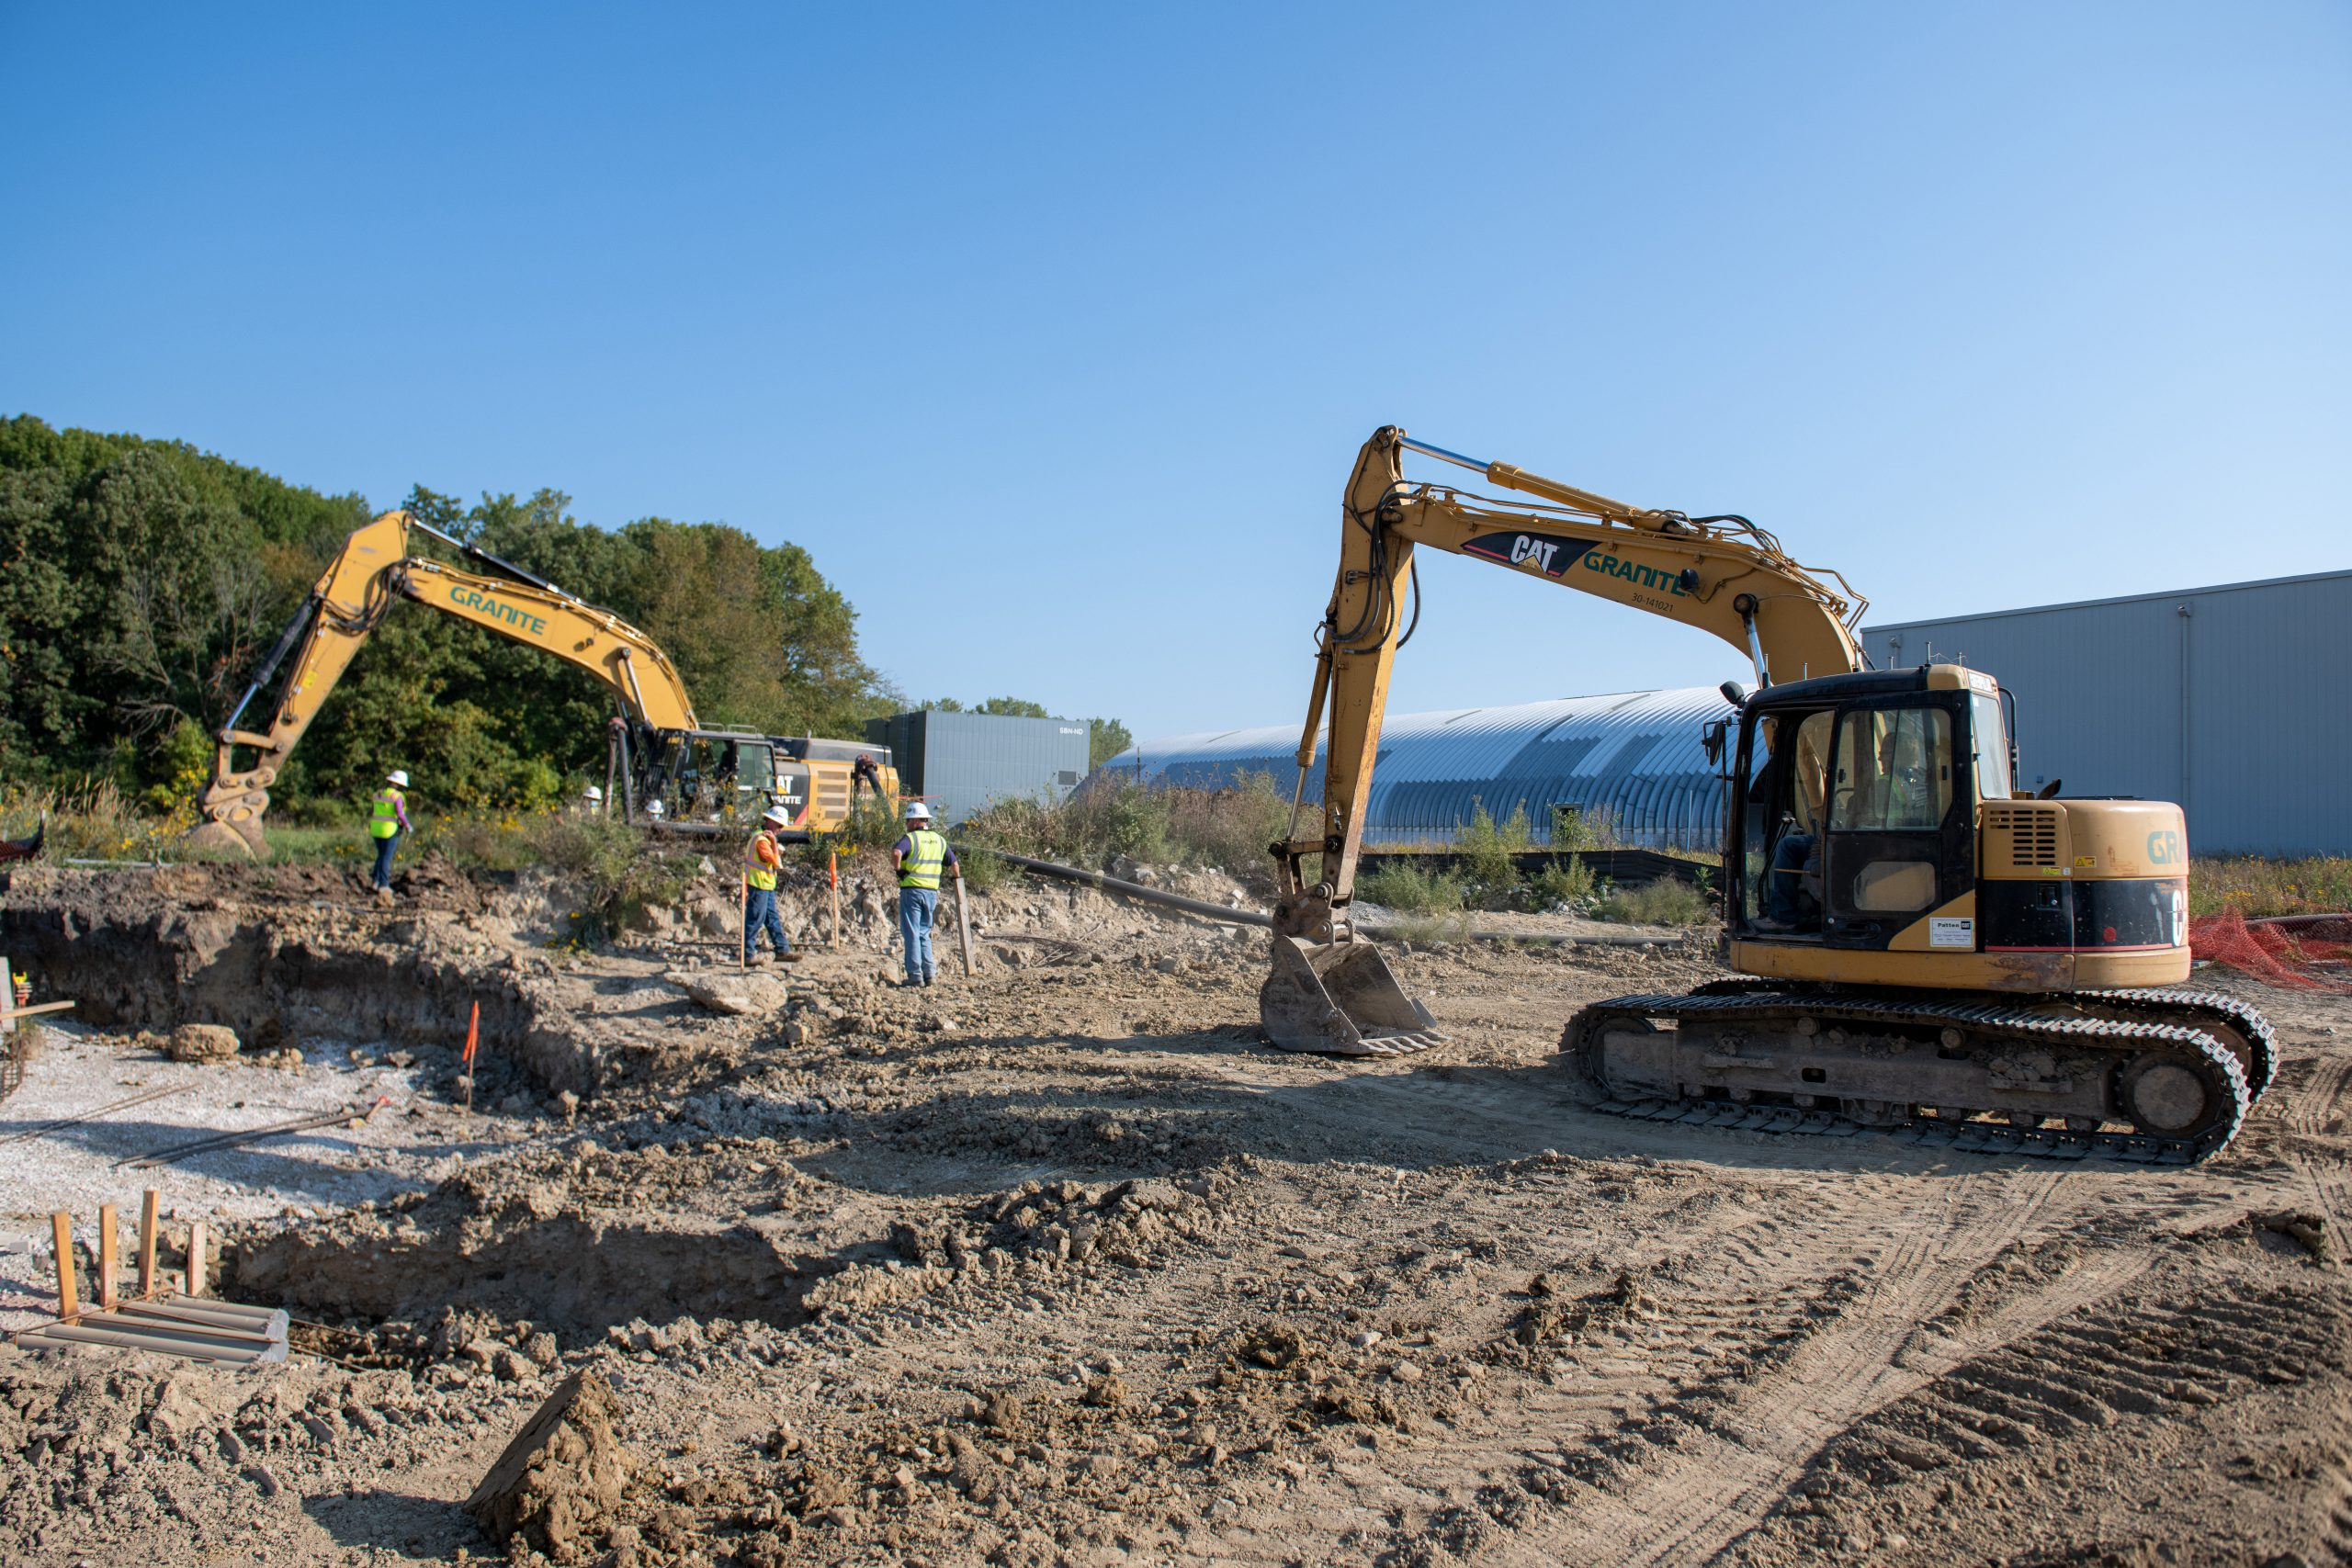 Workers prepare the site for the installation of electrical lines and a sump. Beneath the surface is a new culvert.